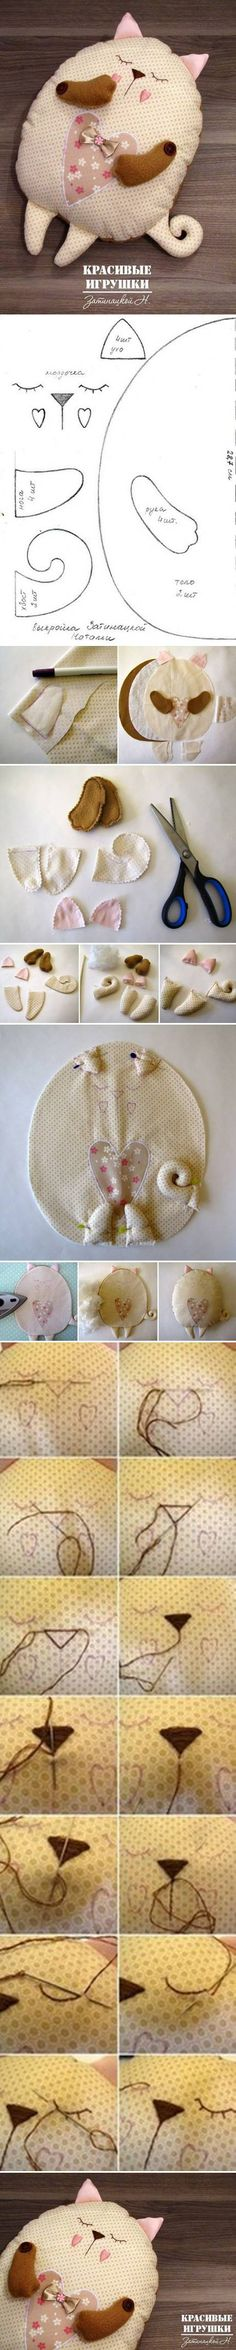 DIY-Soft-Sew-Fabric-Cat.jpg (430×4282)